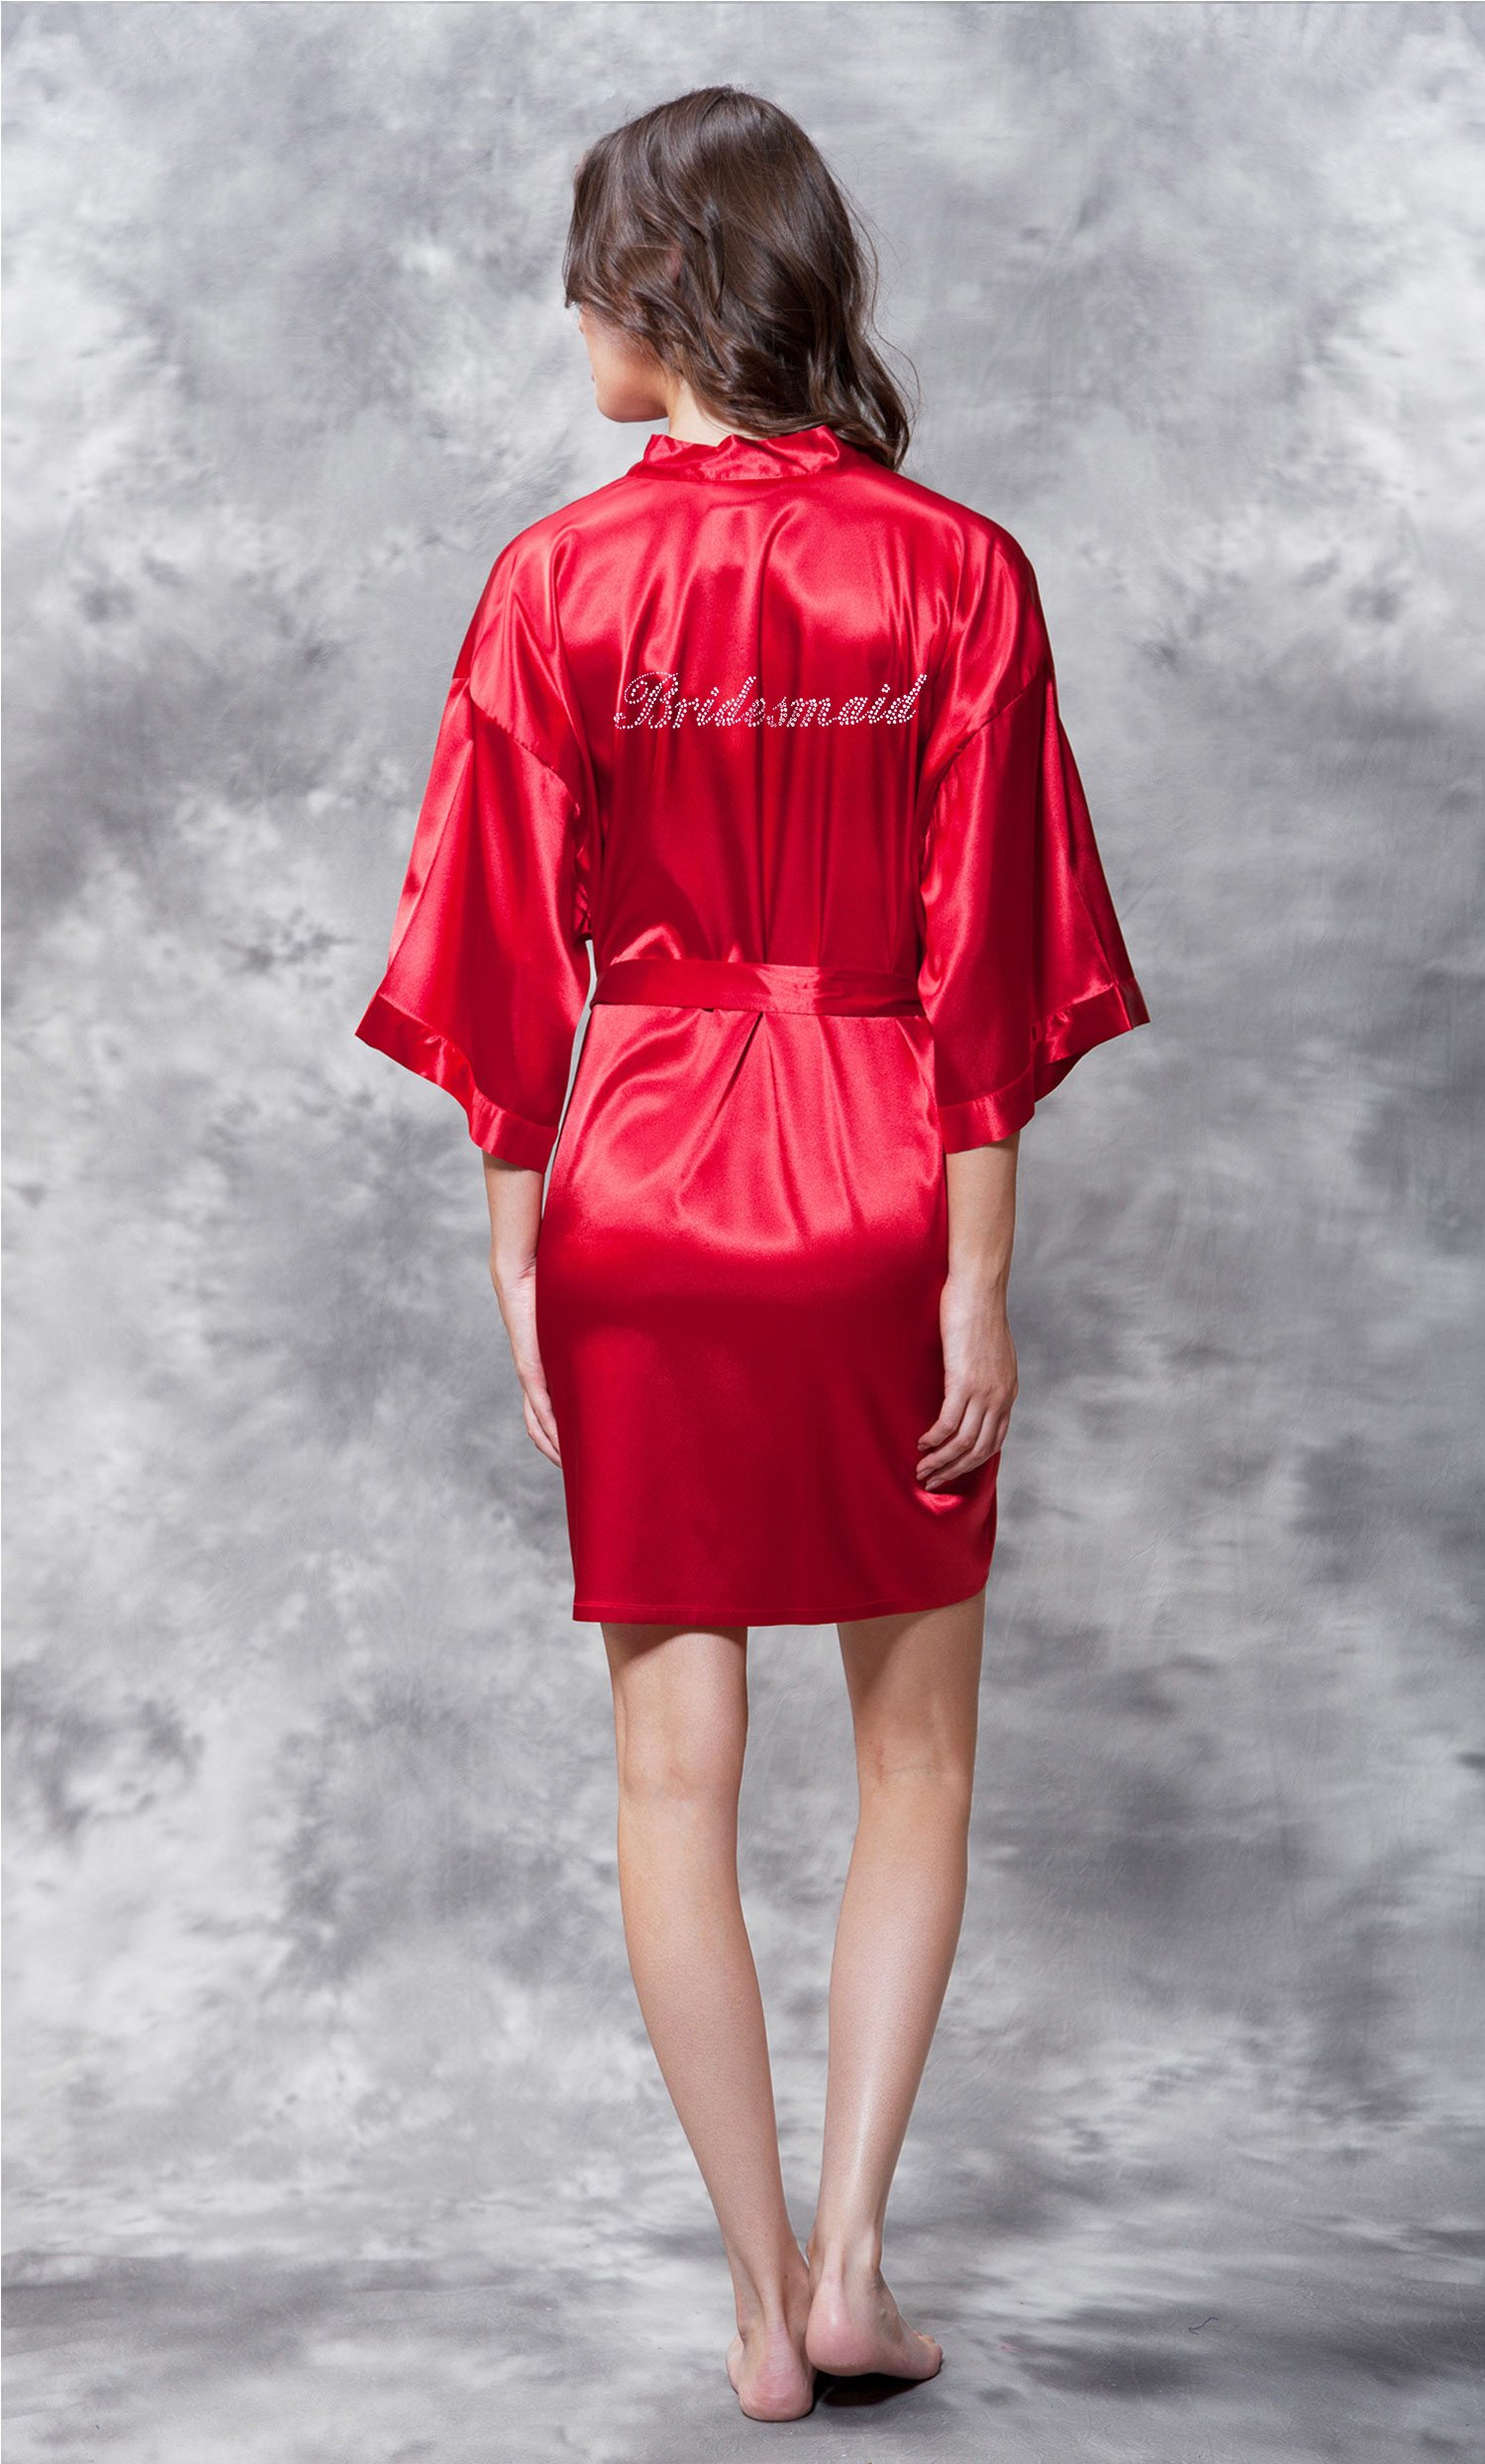 0a67257942 Cheap Bridesmaid Robes    Bridesmaid Clear Rhinestone Satin Kimono Red  Short Robe - Wholesale bathrobes